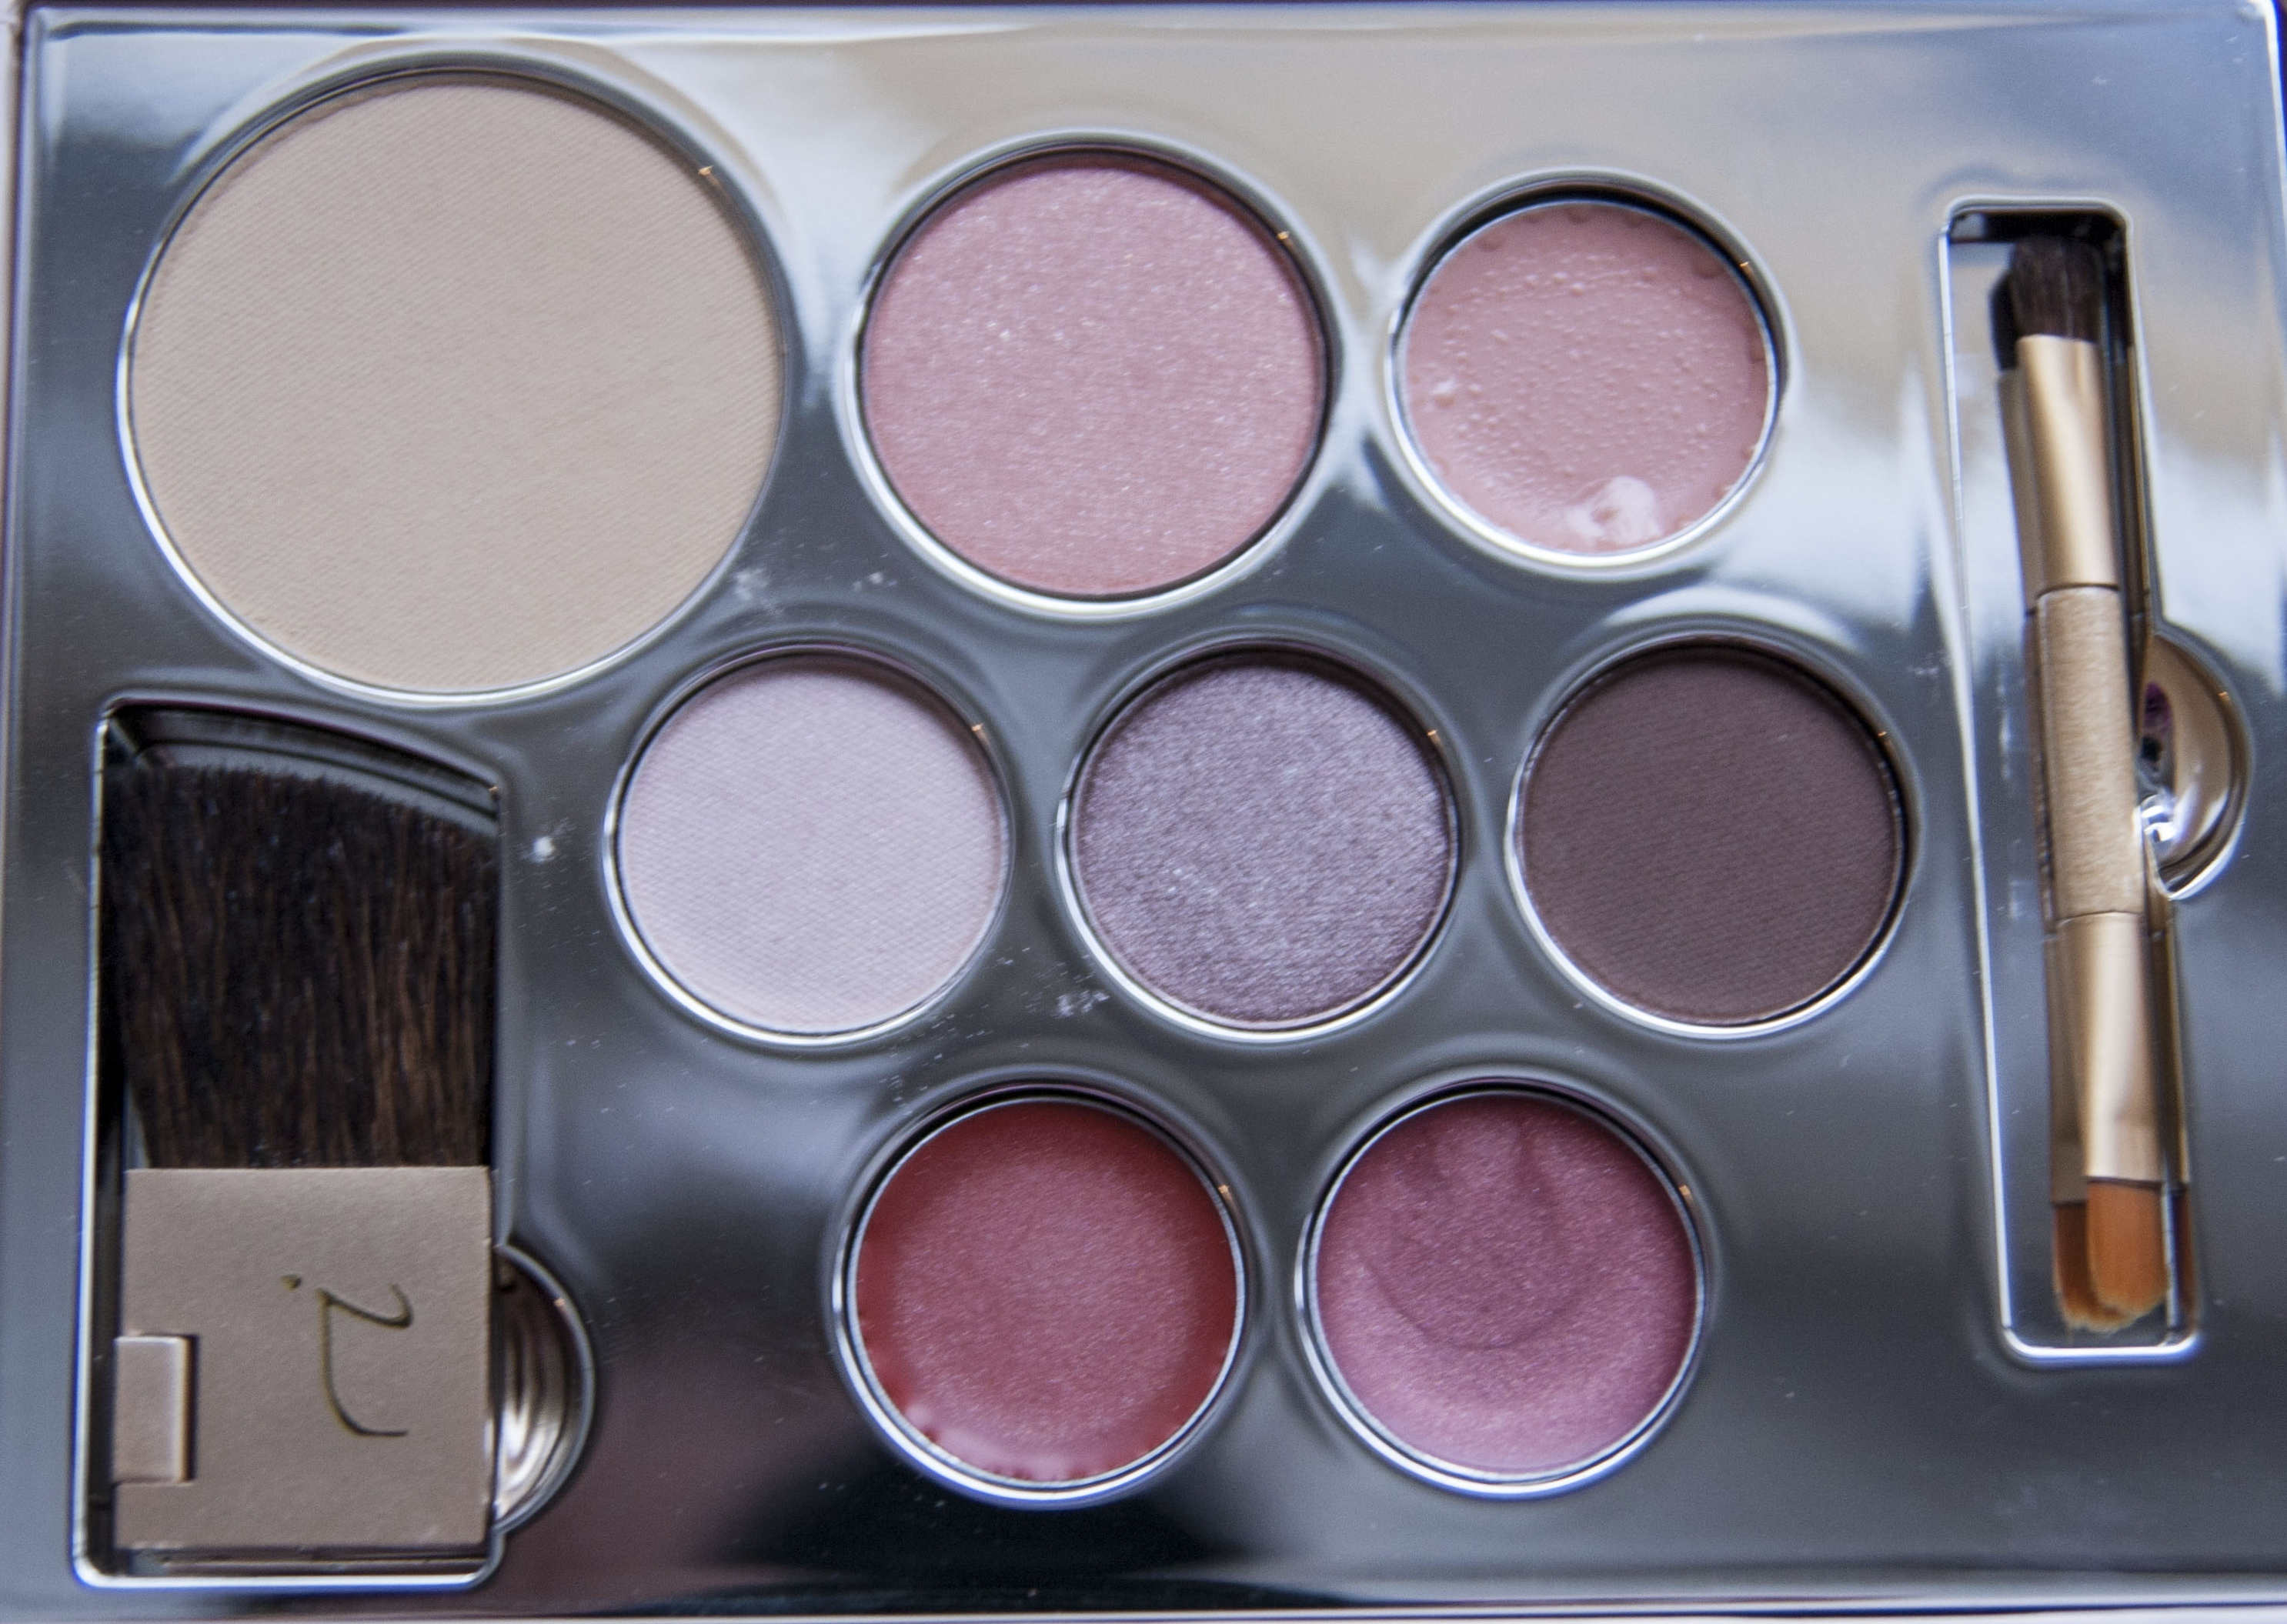 Jane Iredale Color sample kit | Culture of make-up